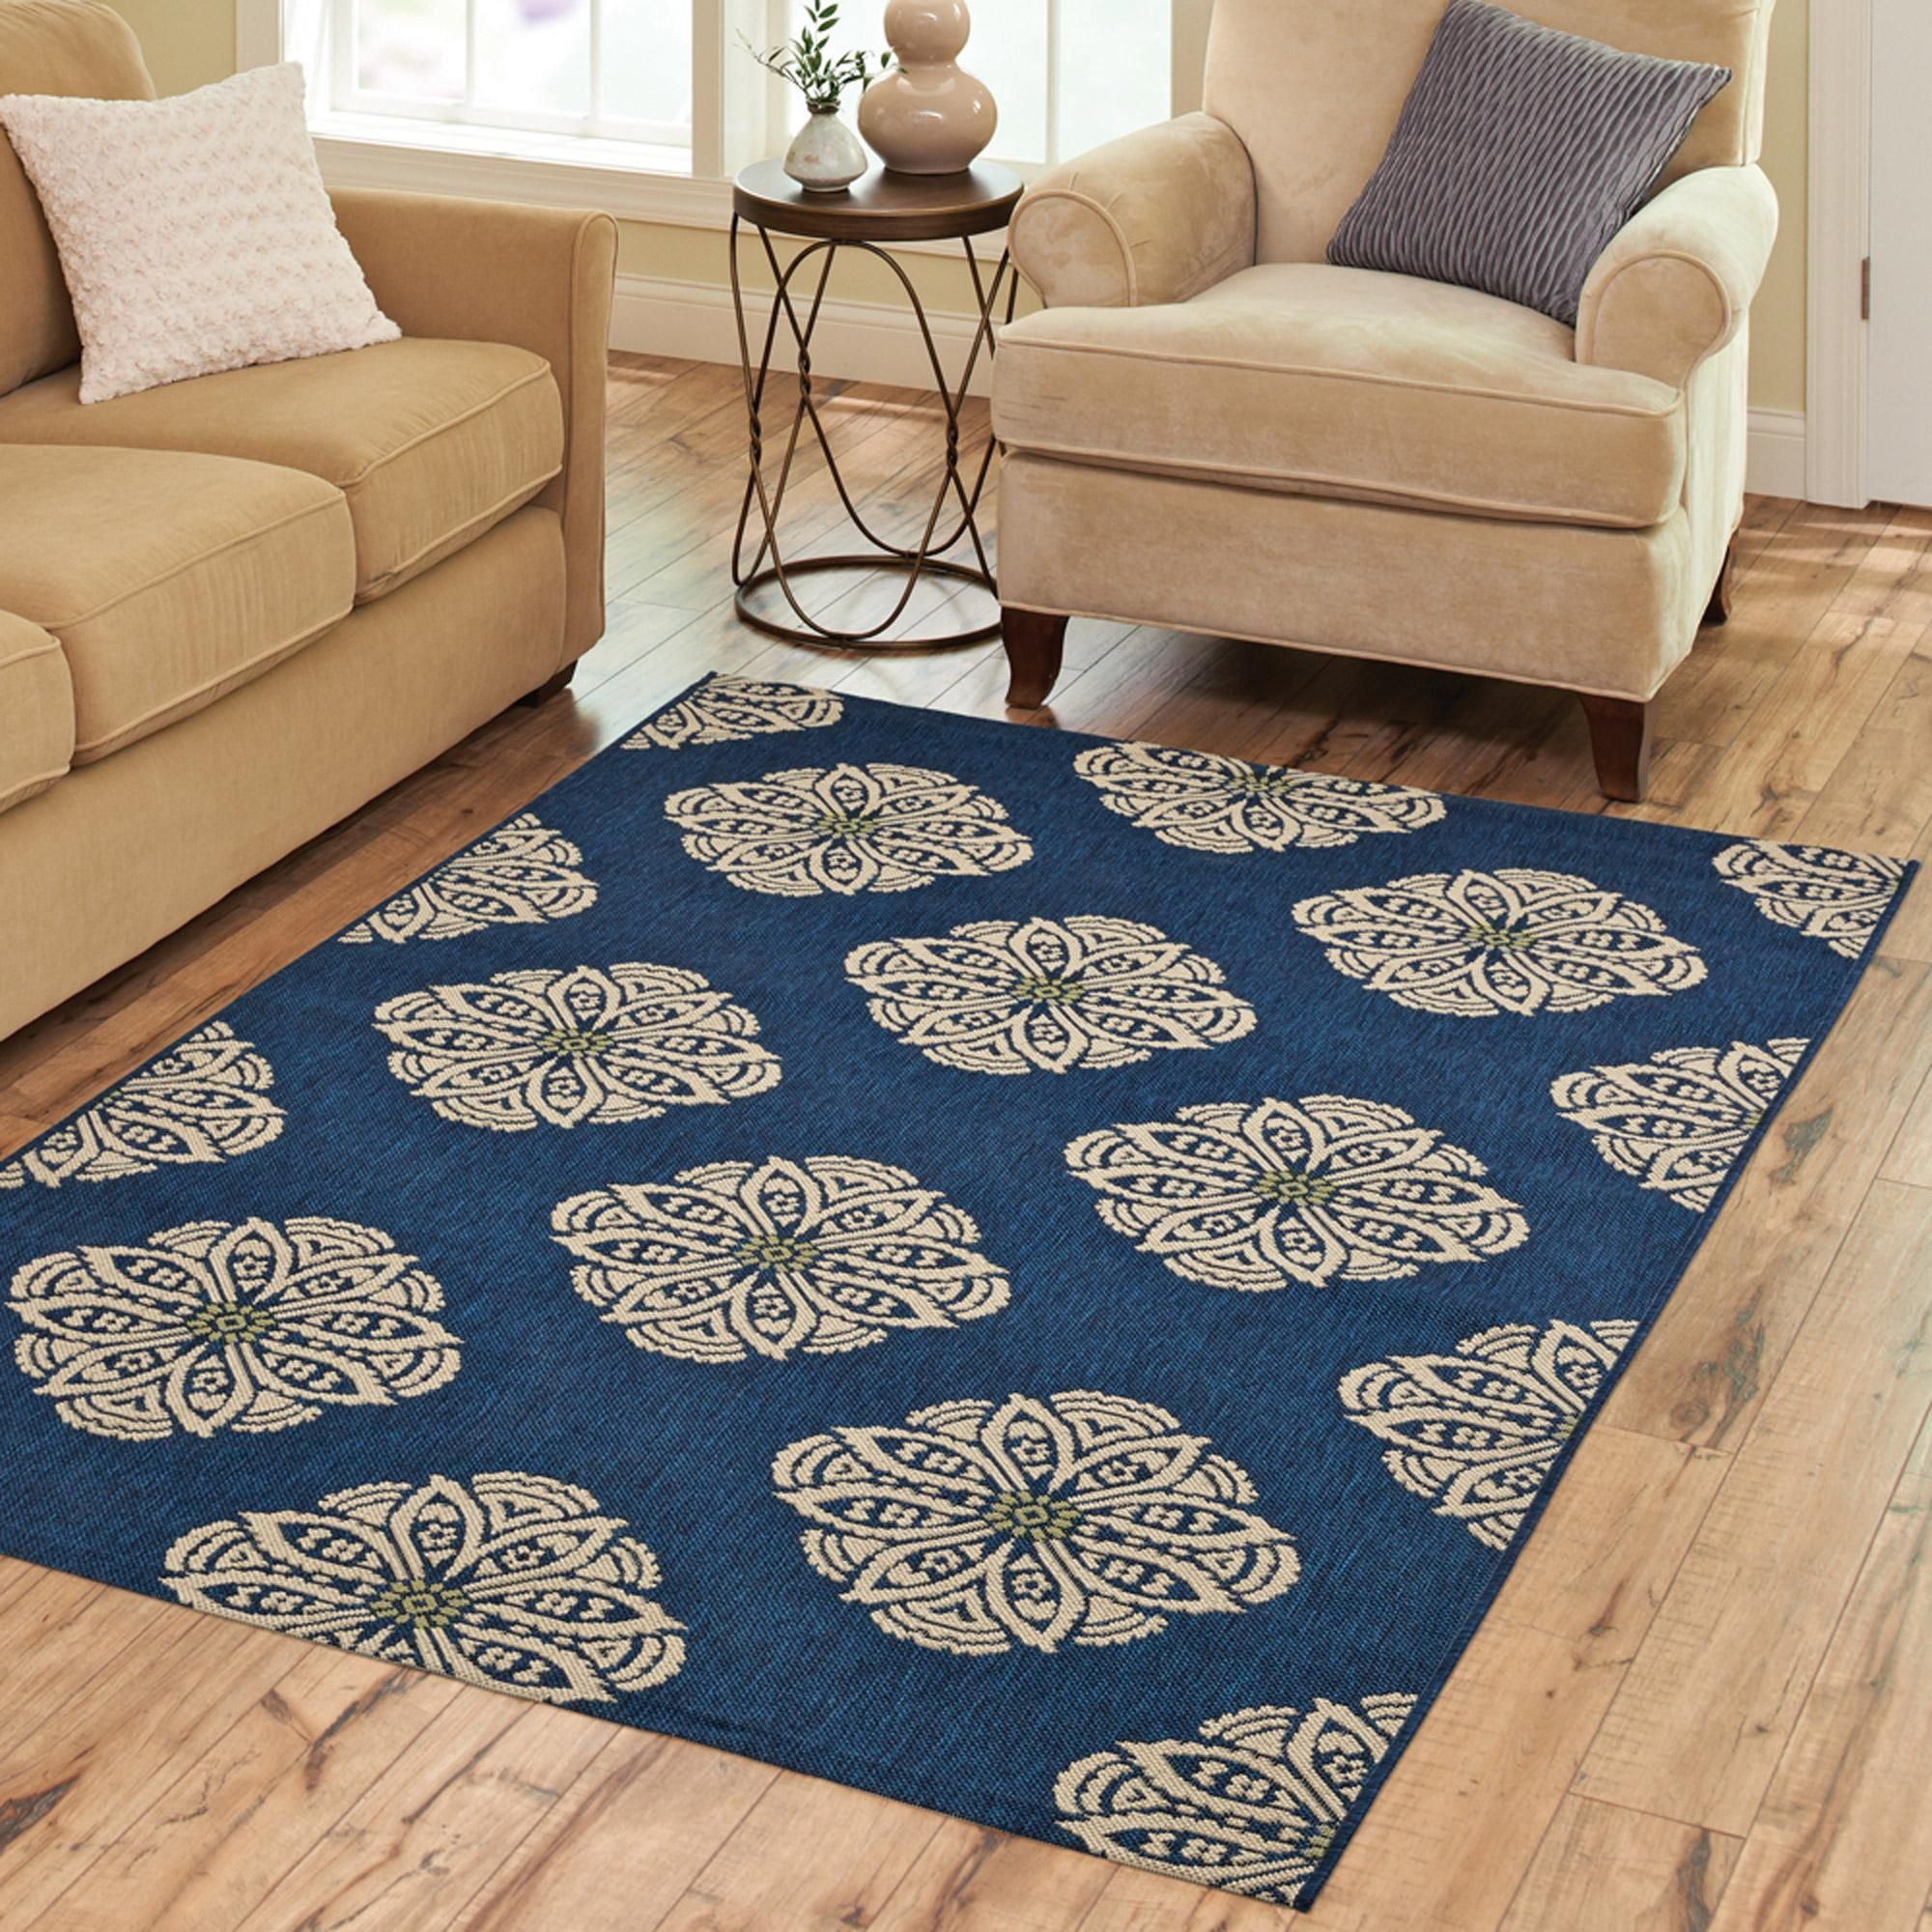 7X7 Area Rugs For Dining Room Polypropylene Rugs With Brown Sofa And Large Windows For Family